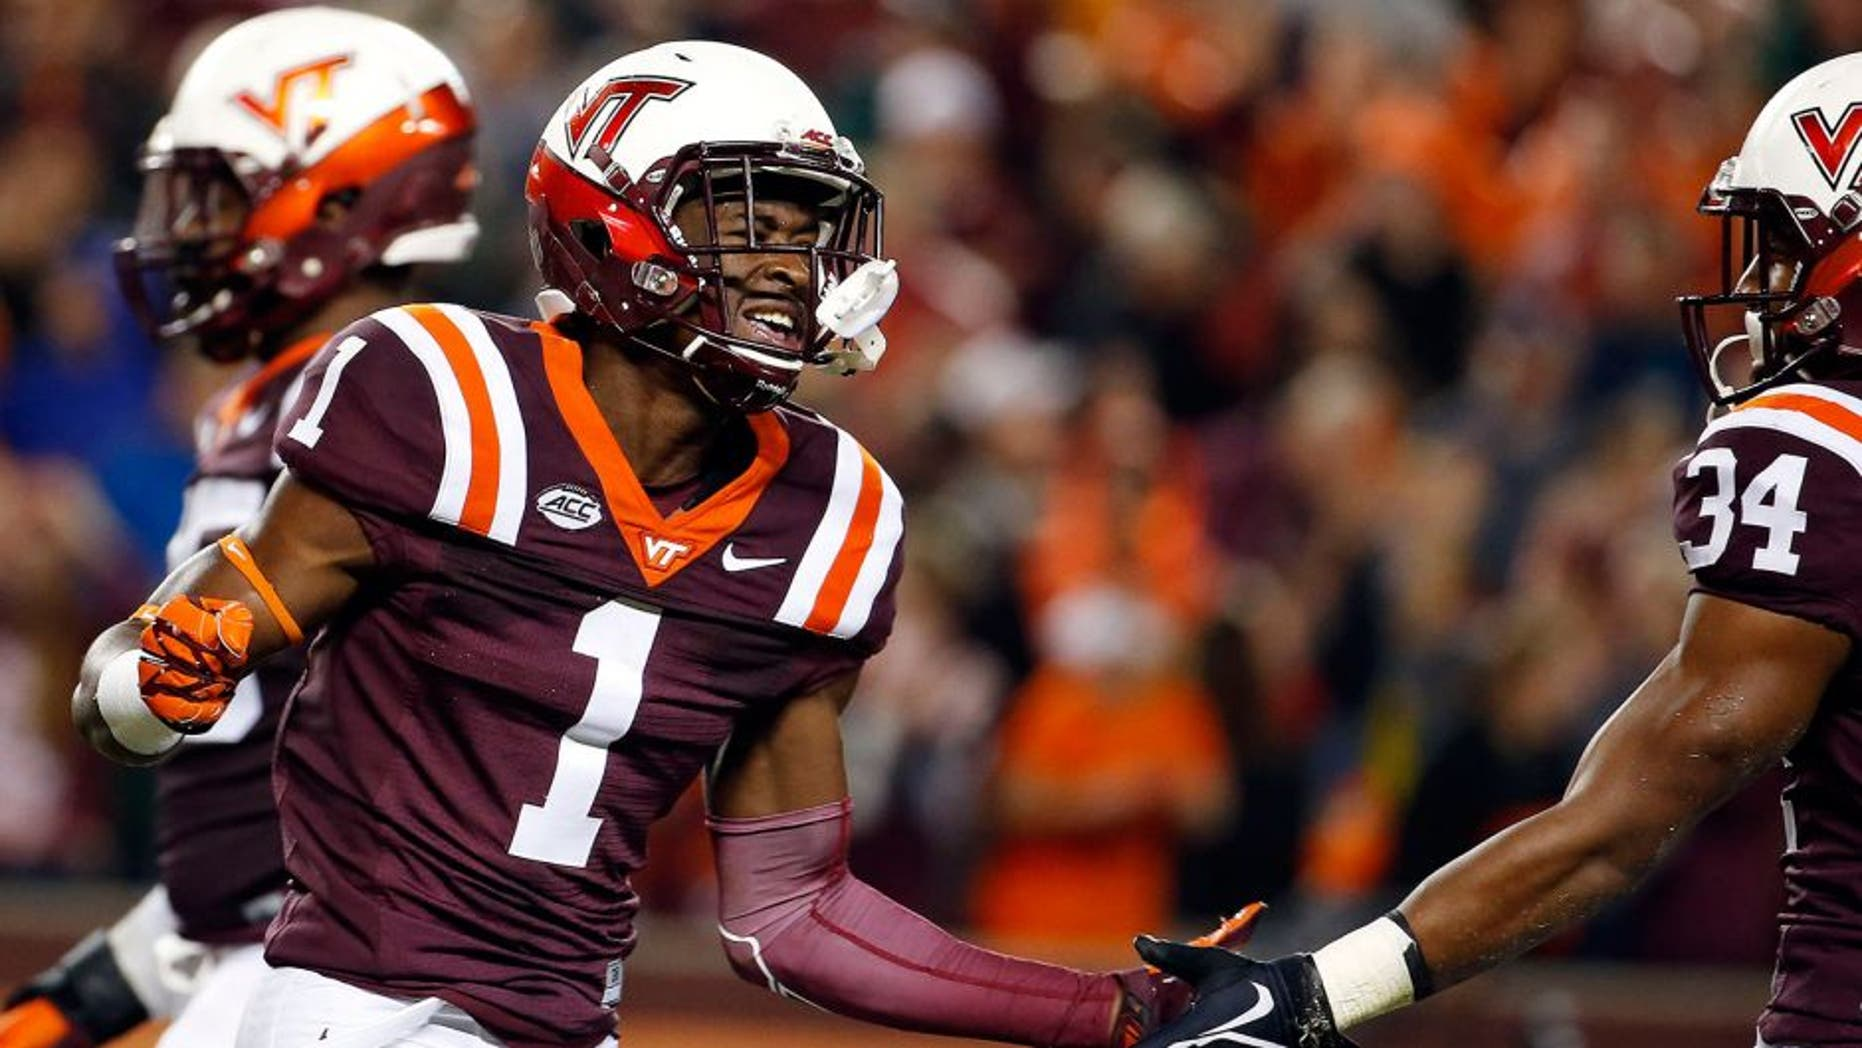 Oct 9, 2015; Blacksburg, VA, USA; Virginia Tech Hokies wide receiver Isaiah Ford (1) celebrates after scoring a touchdown against the North Carolina State Wolfpack at Lane Stadium. Mandatory Credit: Peter Casey-USA TODAY Sports